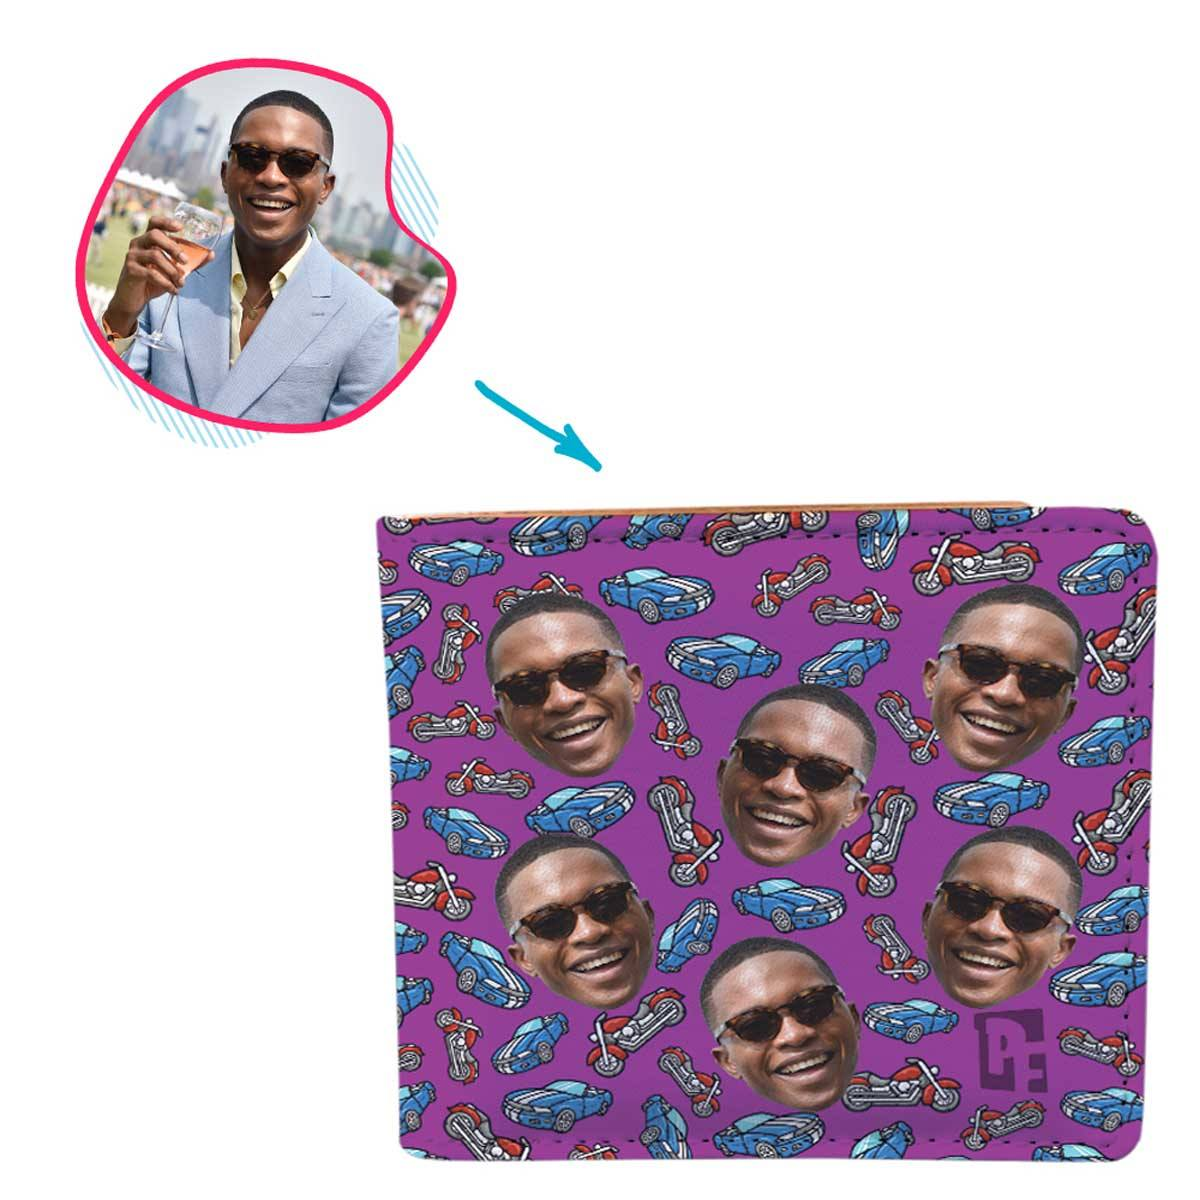 Purple Cars & Motorbikes personalized wallet with photo of face printed on it